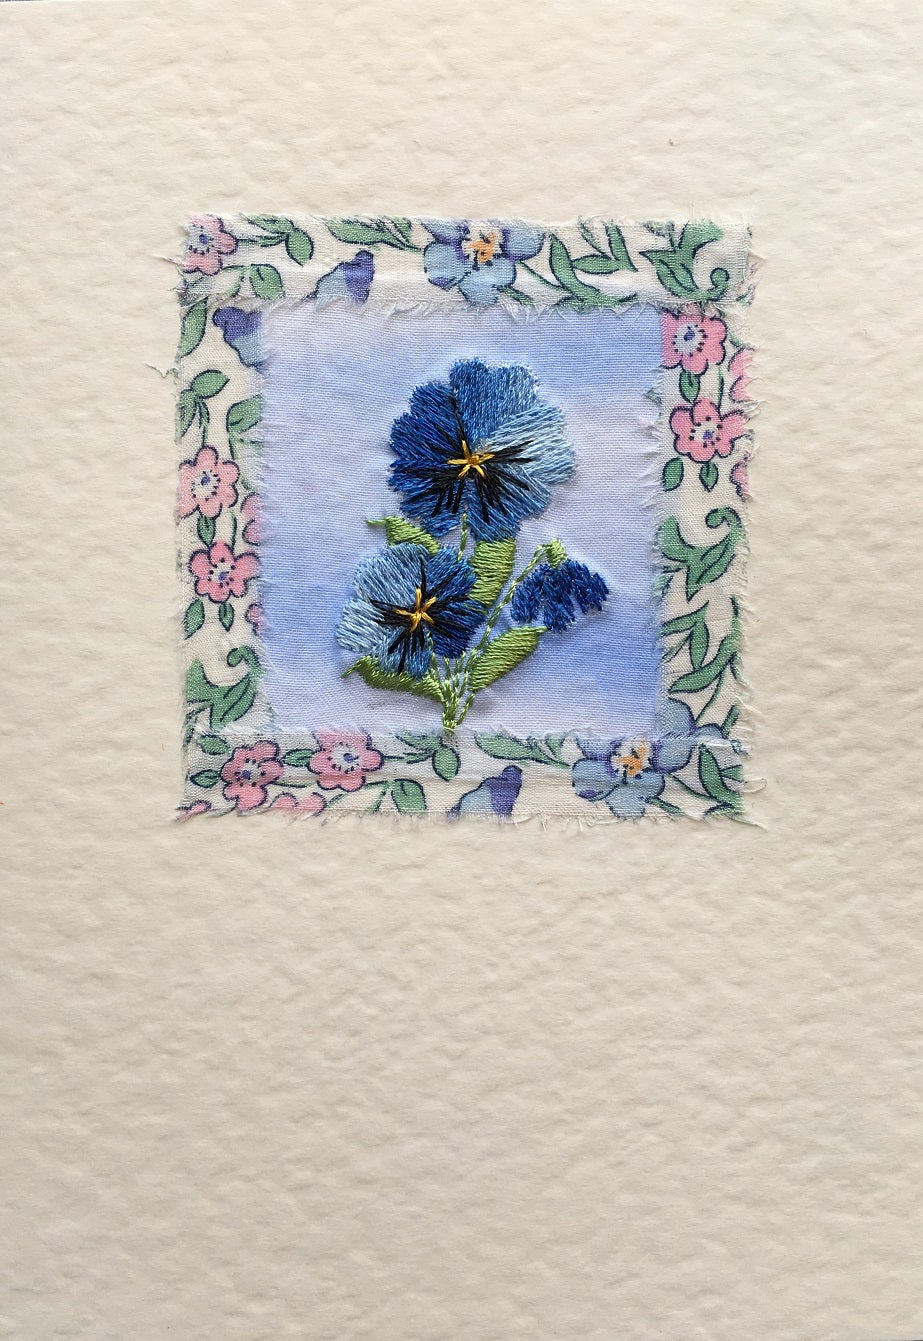 Blue pansy with Liberty print border